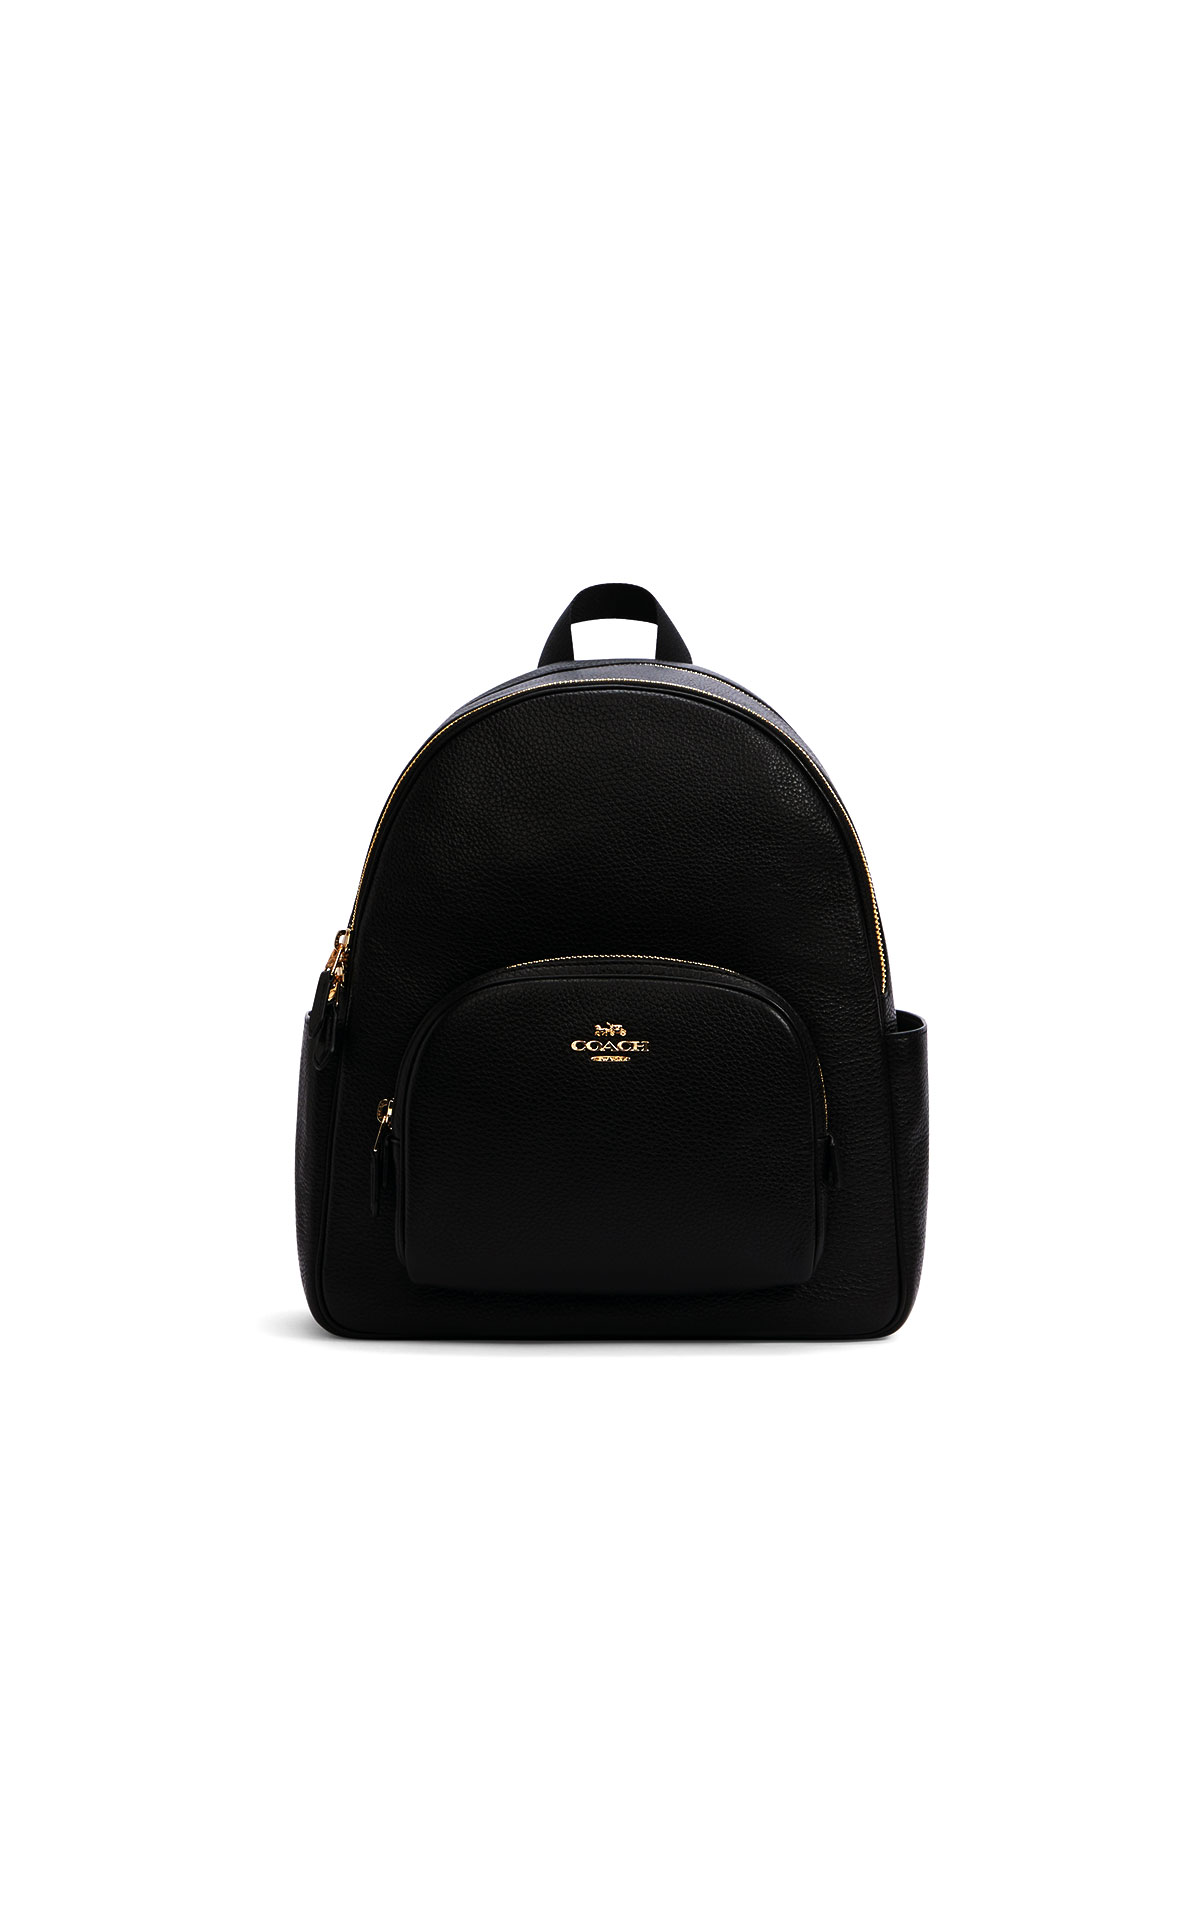 Coach court backpack at The Bicester Village Shopping Collection